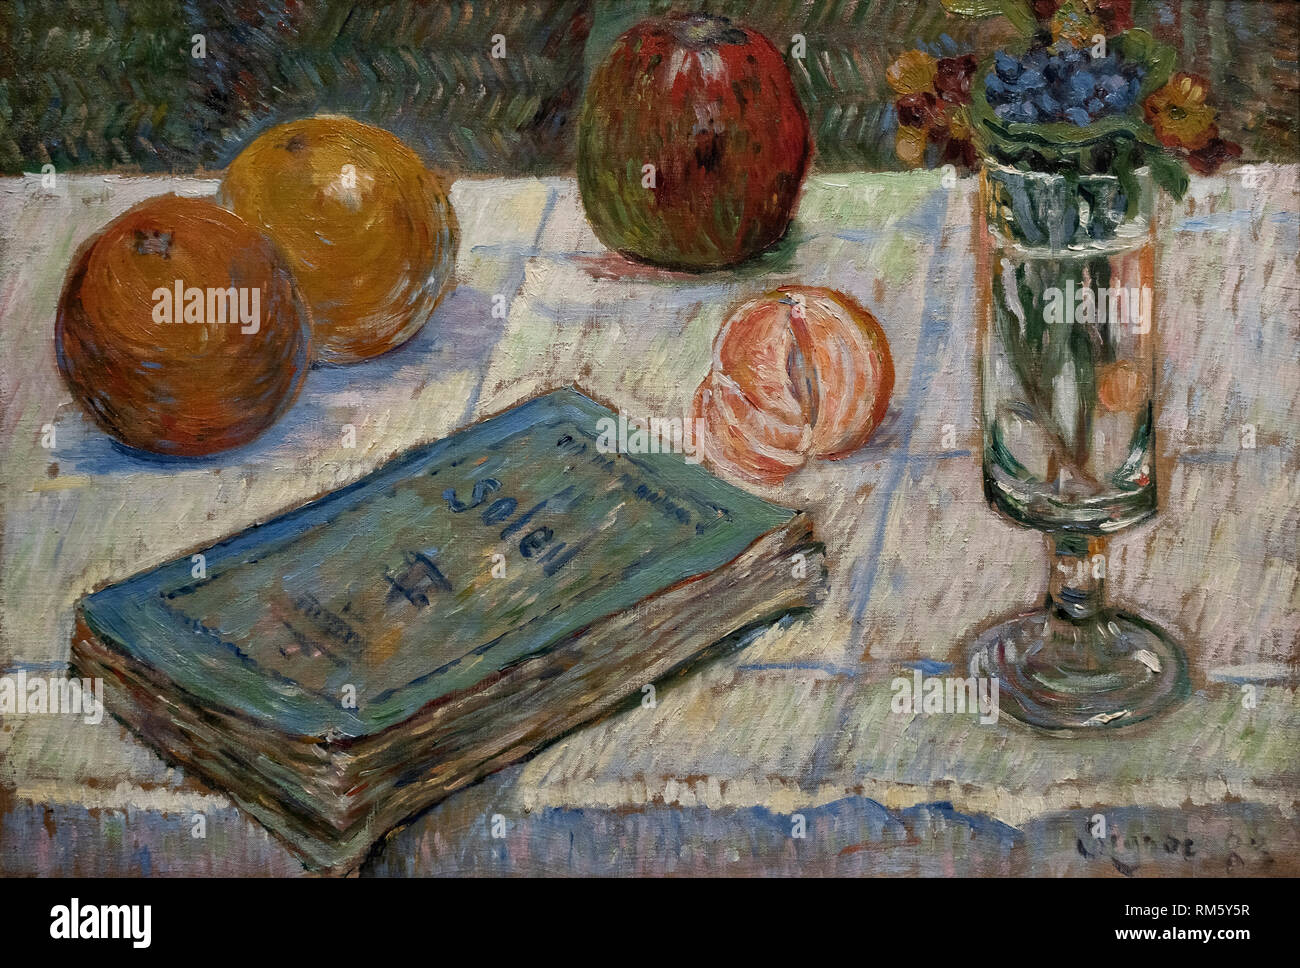 Paul Signac (1863-1935), Still Life with Book, 1883. Stilleben mit Buch. Alte Nationalgalerie, Berlin. Stock Photo